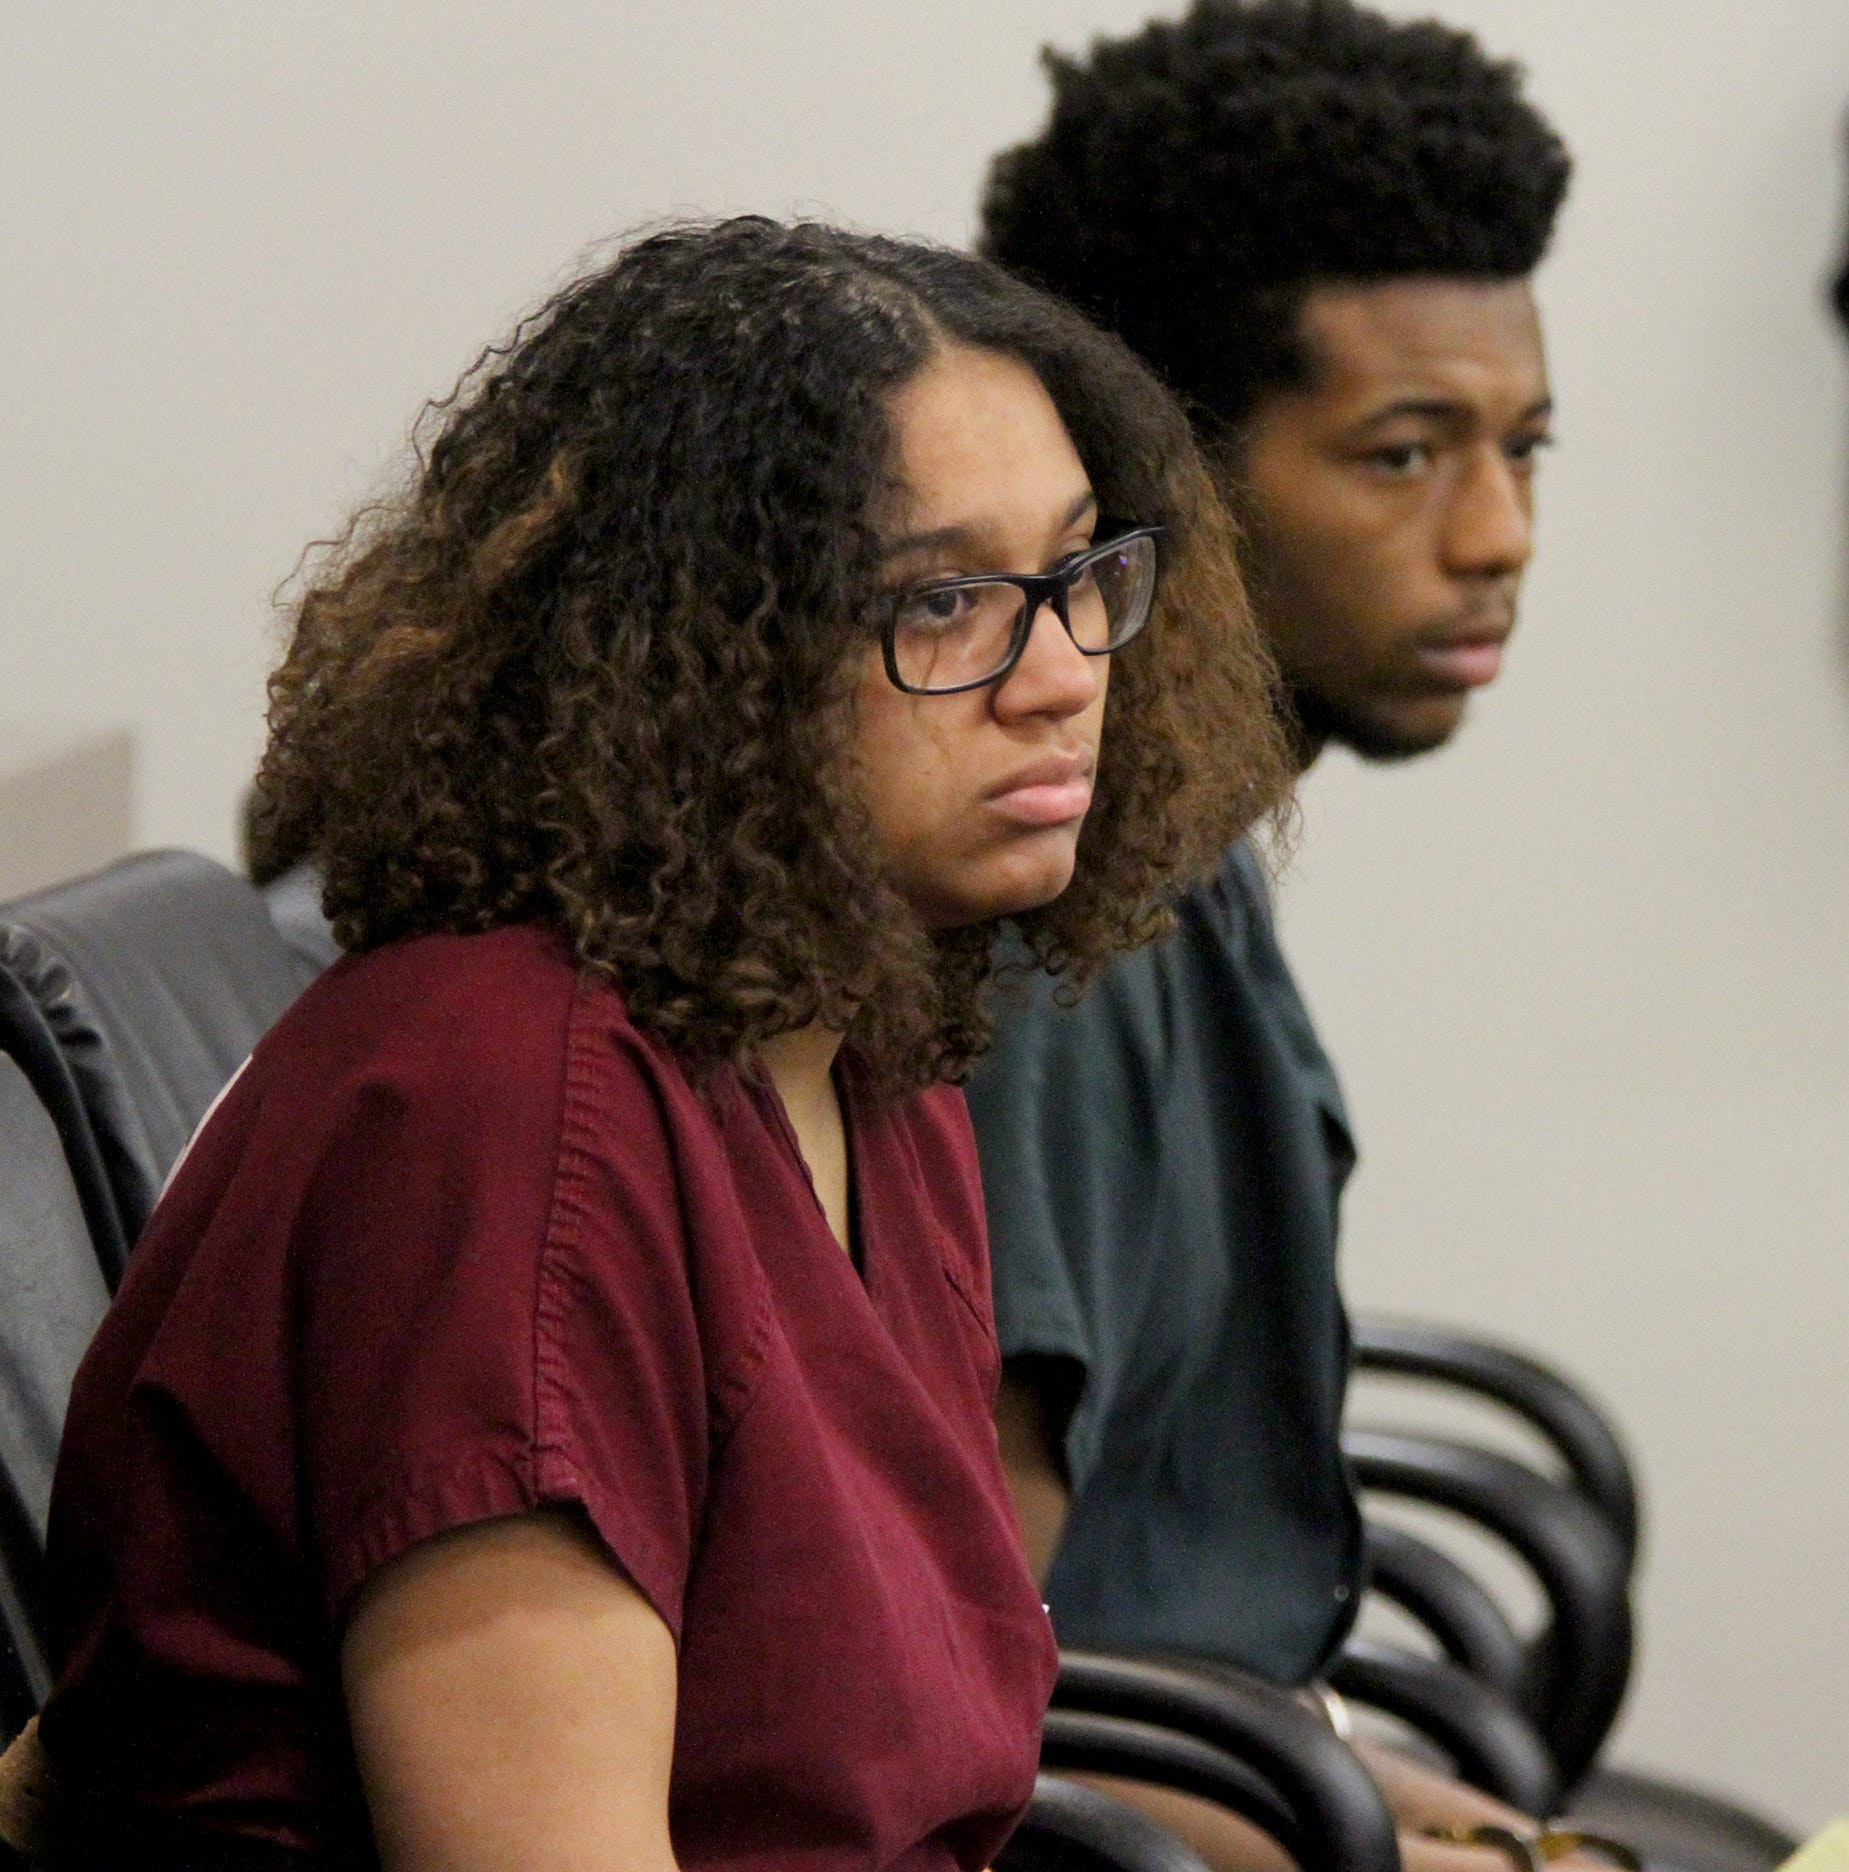 Neptune baby killed: Courtroom in tears as teens face judge